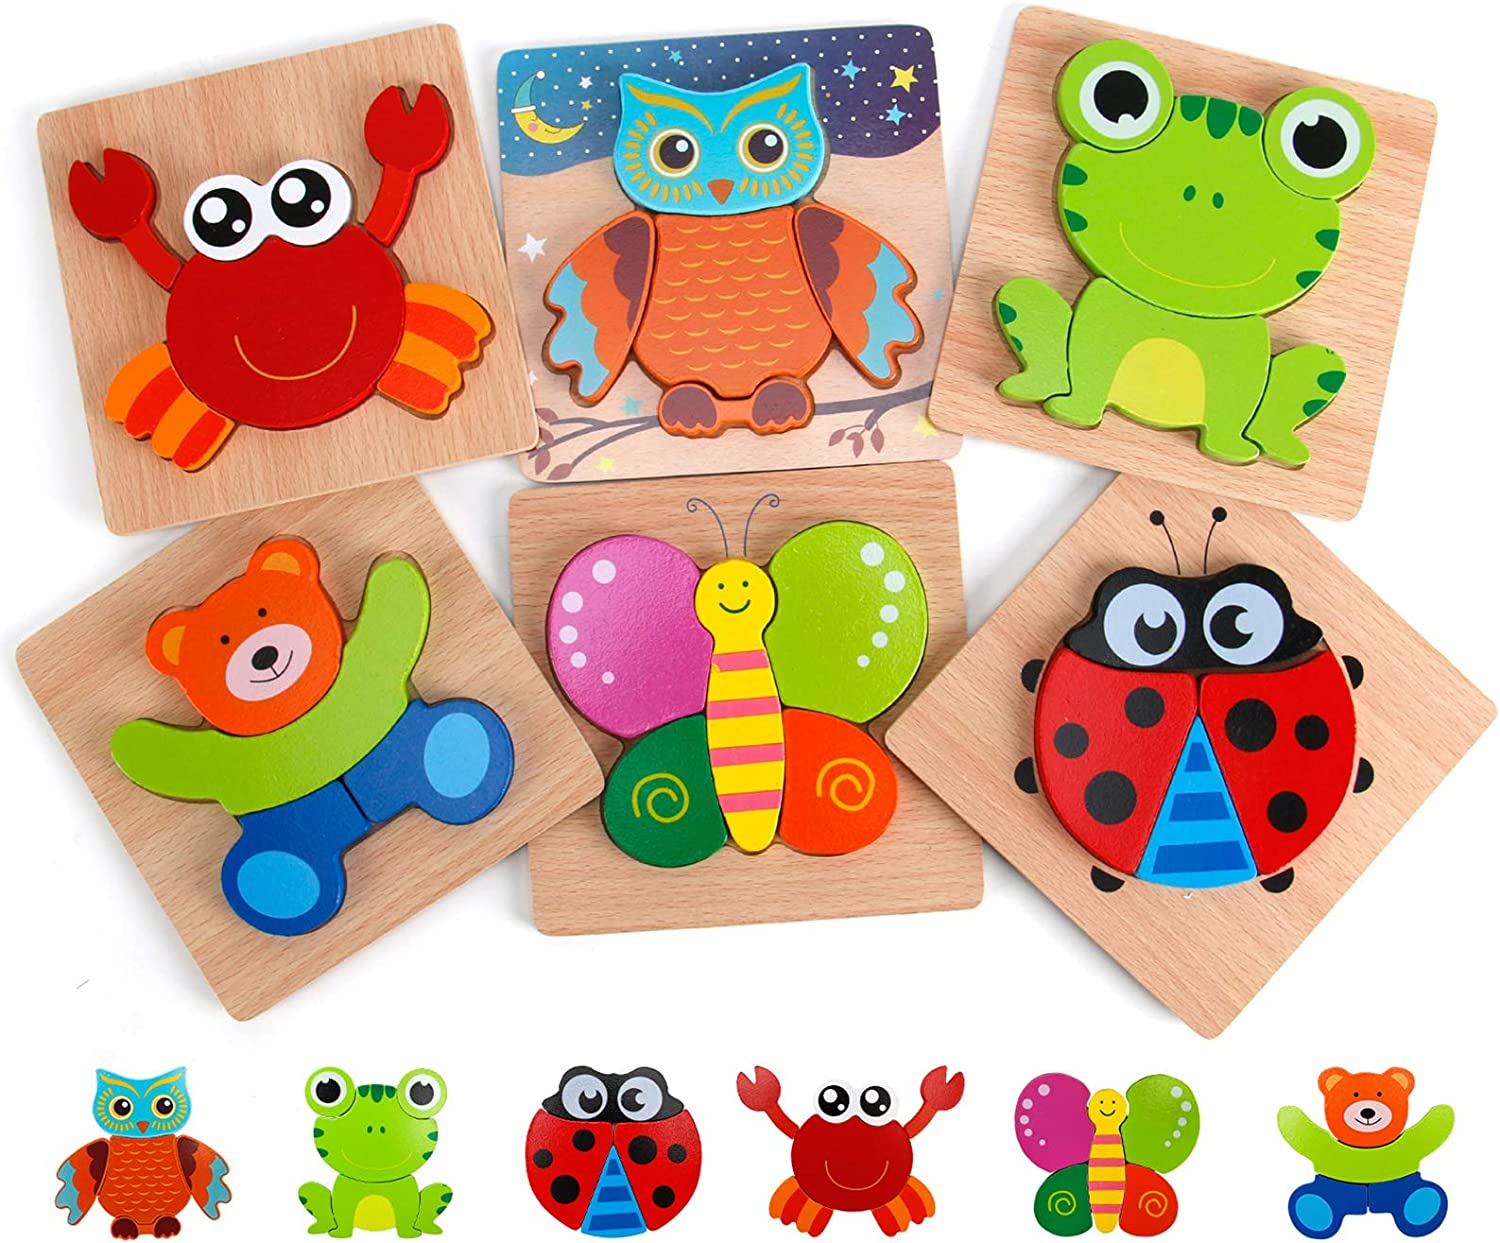 Wooden Puzzles Set for Toddlers Counting Numbers Animals Shapes 2 3 4 Years